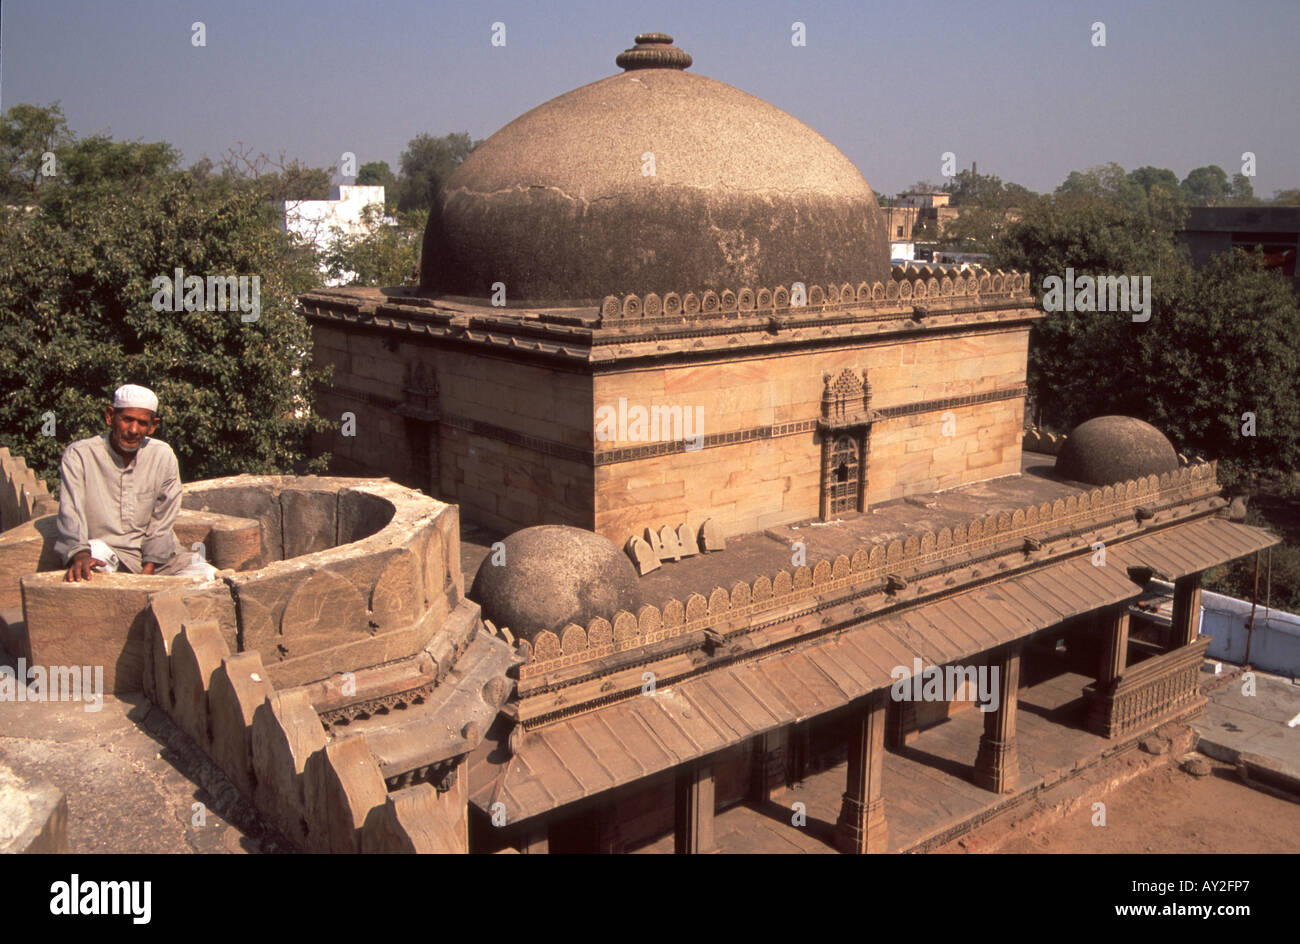 Bai Harir mosque and tomb complex in Ahmedabad, Gujarat, India. - Stock Image